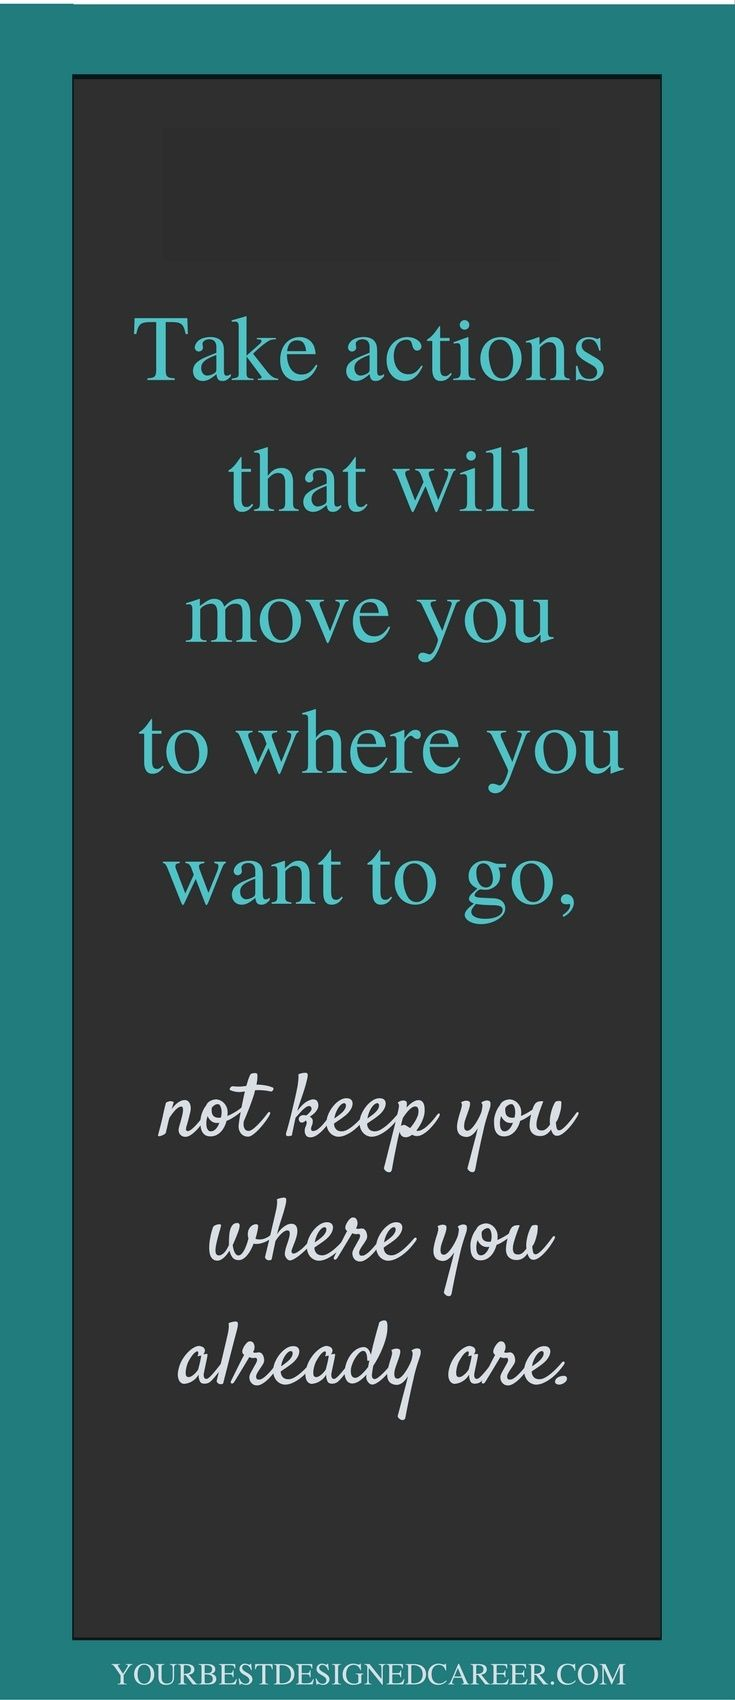 Quote Inspiration Inspirational Quote Working Woman Power Career Career Quote Career Development Quotes Career Quotes Inspirational Quotes